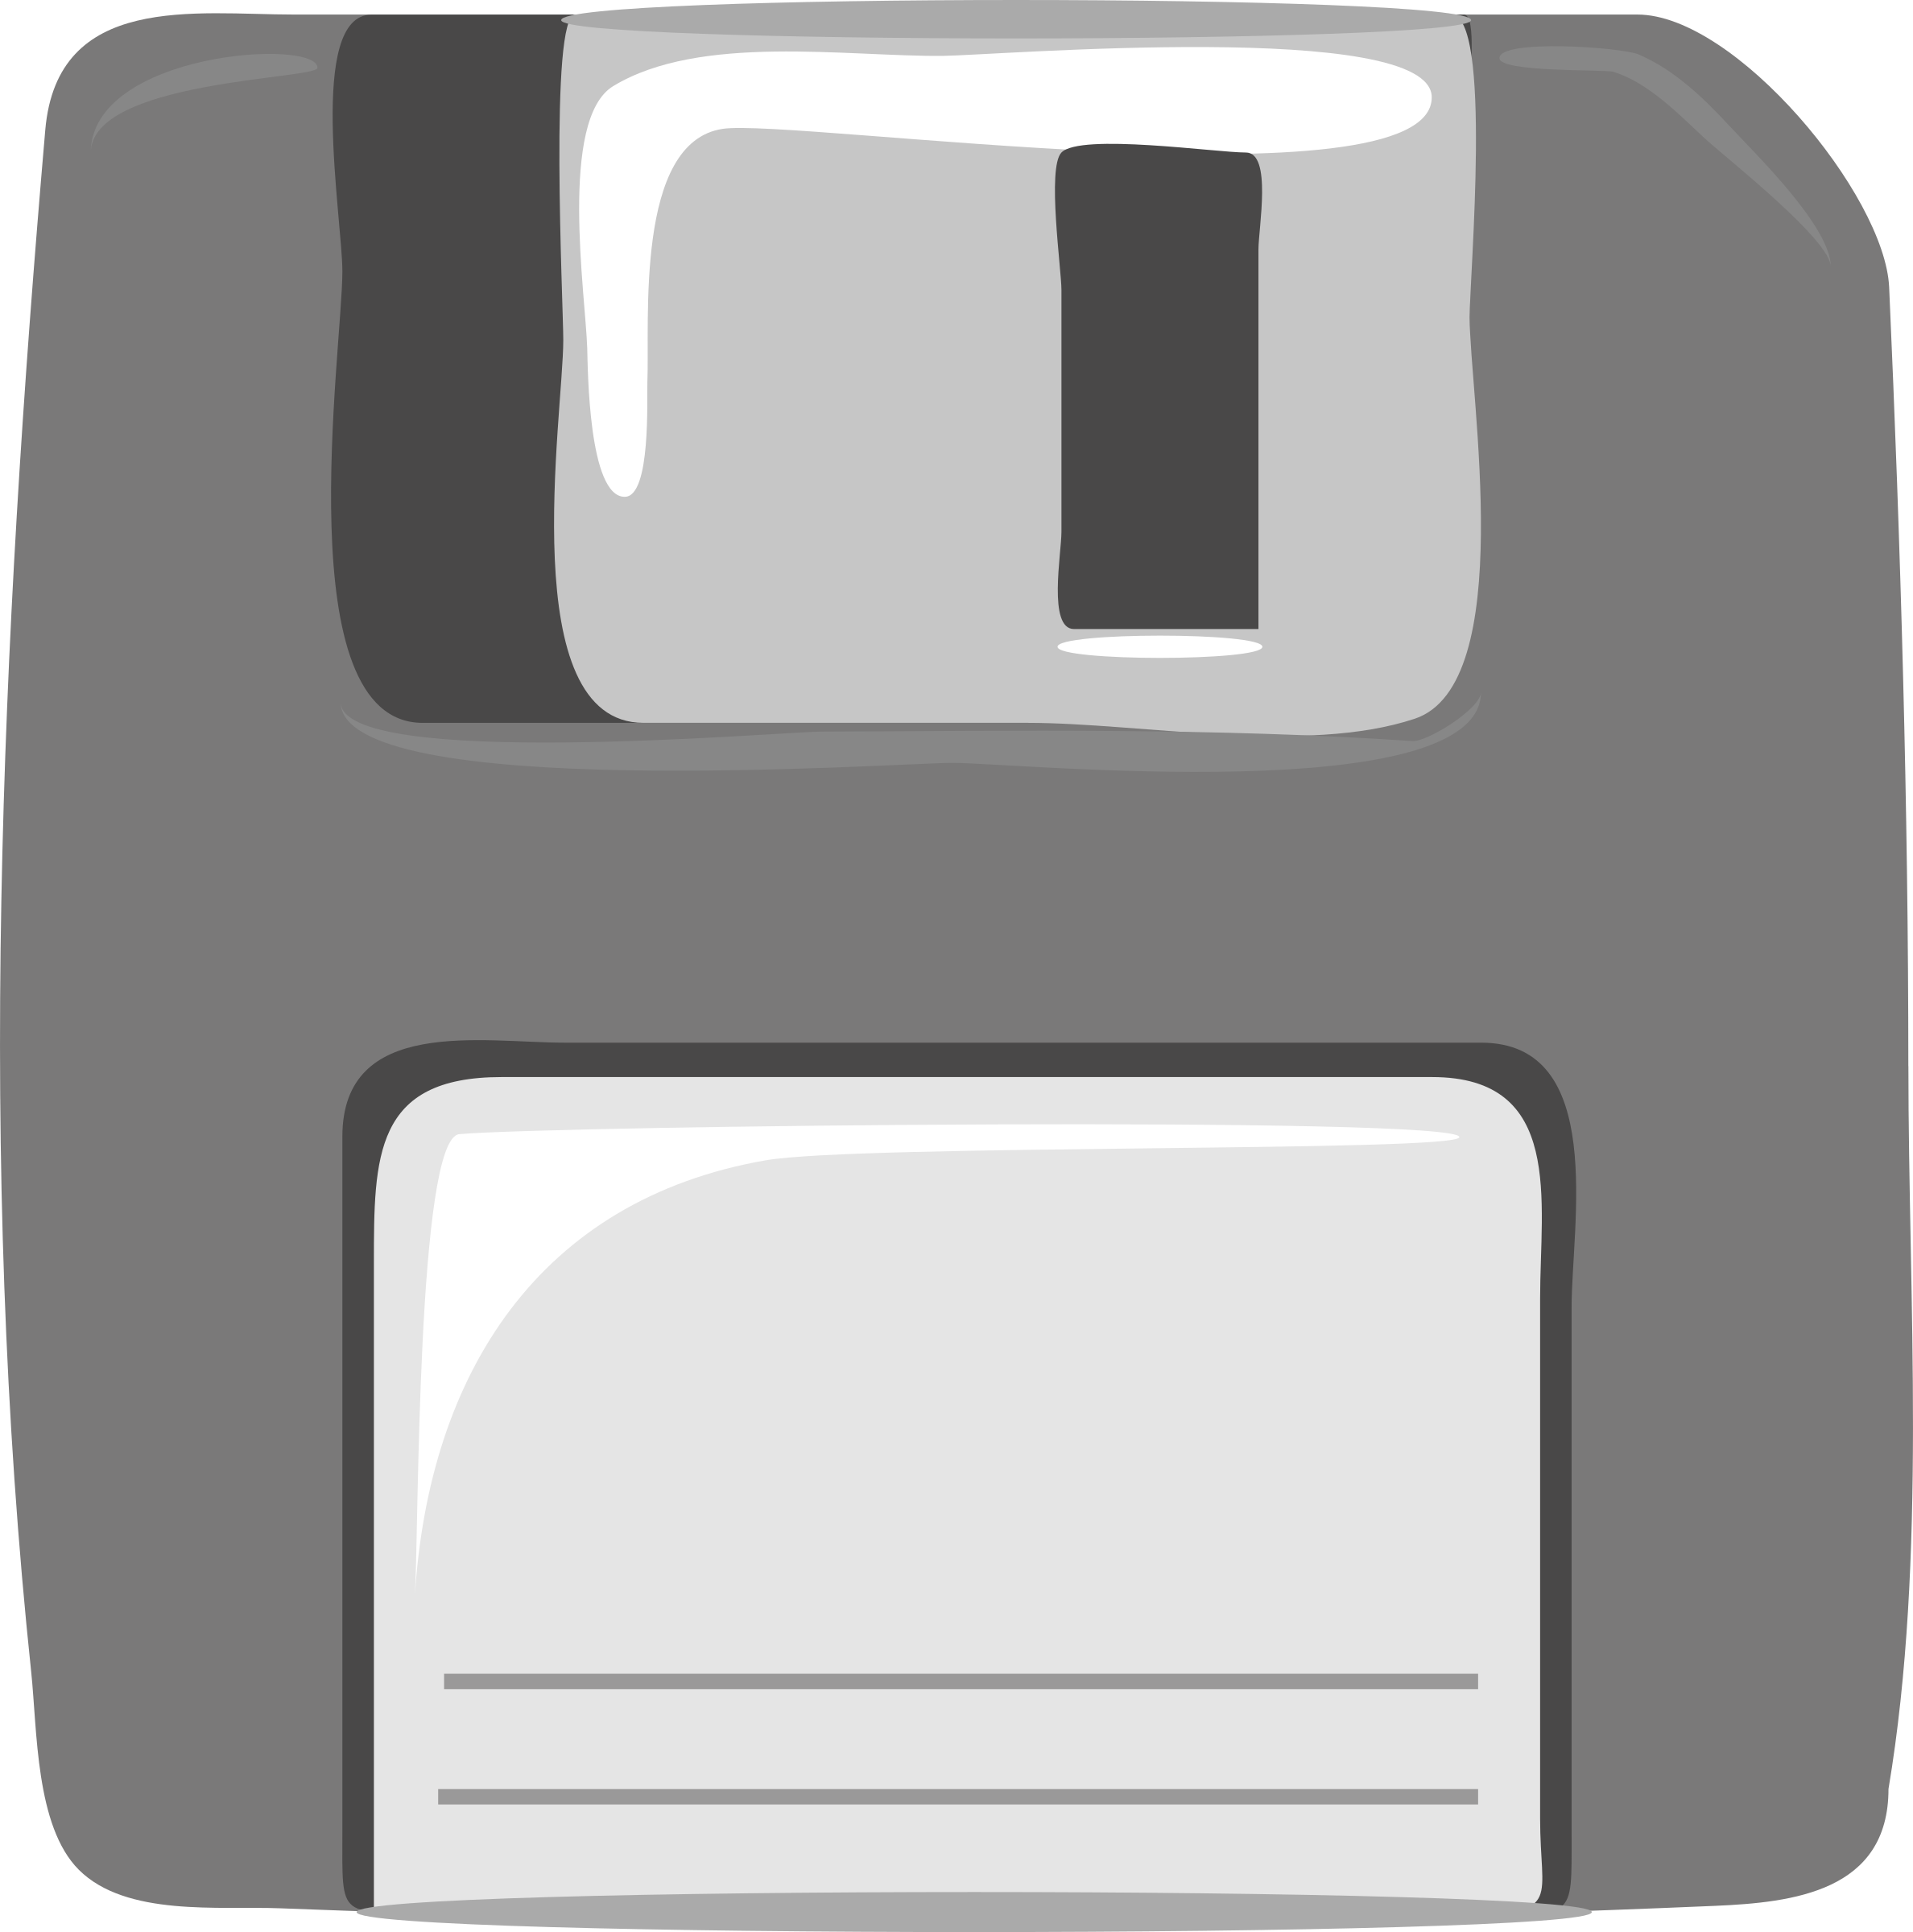 Architetto -- Floppy disk by francesco_rollandin